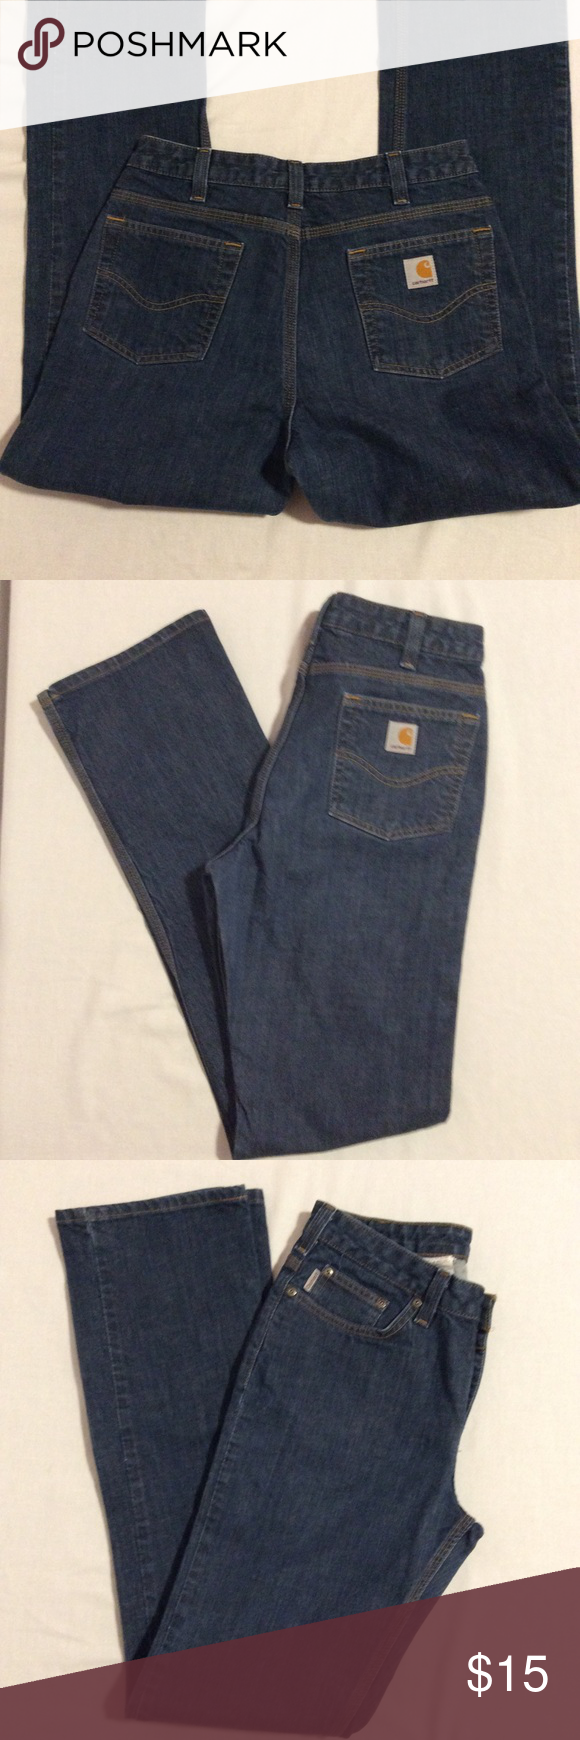 Carhartt Women's Traditional Fit  Jeans 10 x 36 Carhartt Women's Traditional Fit Jeans. Gently used. 99% cotton 1% spandex Size 10 x 36 Carhartt Jeans Straight Leg #carharttwomen Carhartt Women's Traditional Fit  Jeans 10 x 36 Carhartt Women's Traditional Fit Jeans. Gently used. 99% cotton 1% spandex Size 10 x 36 Carhartt Jeans Straight Leg #carharttwomen